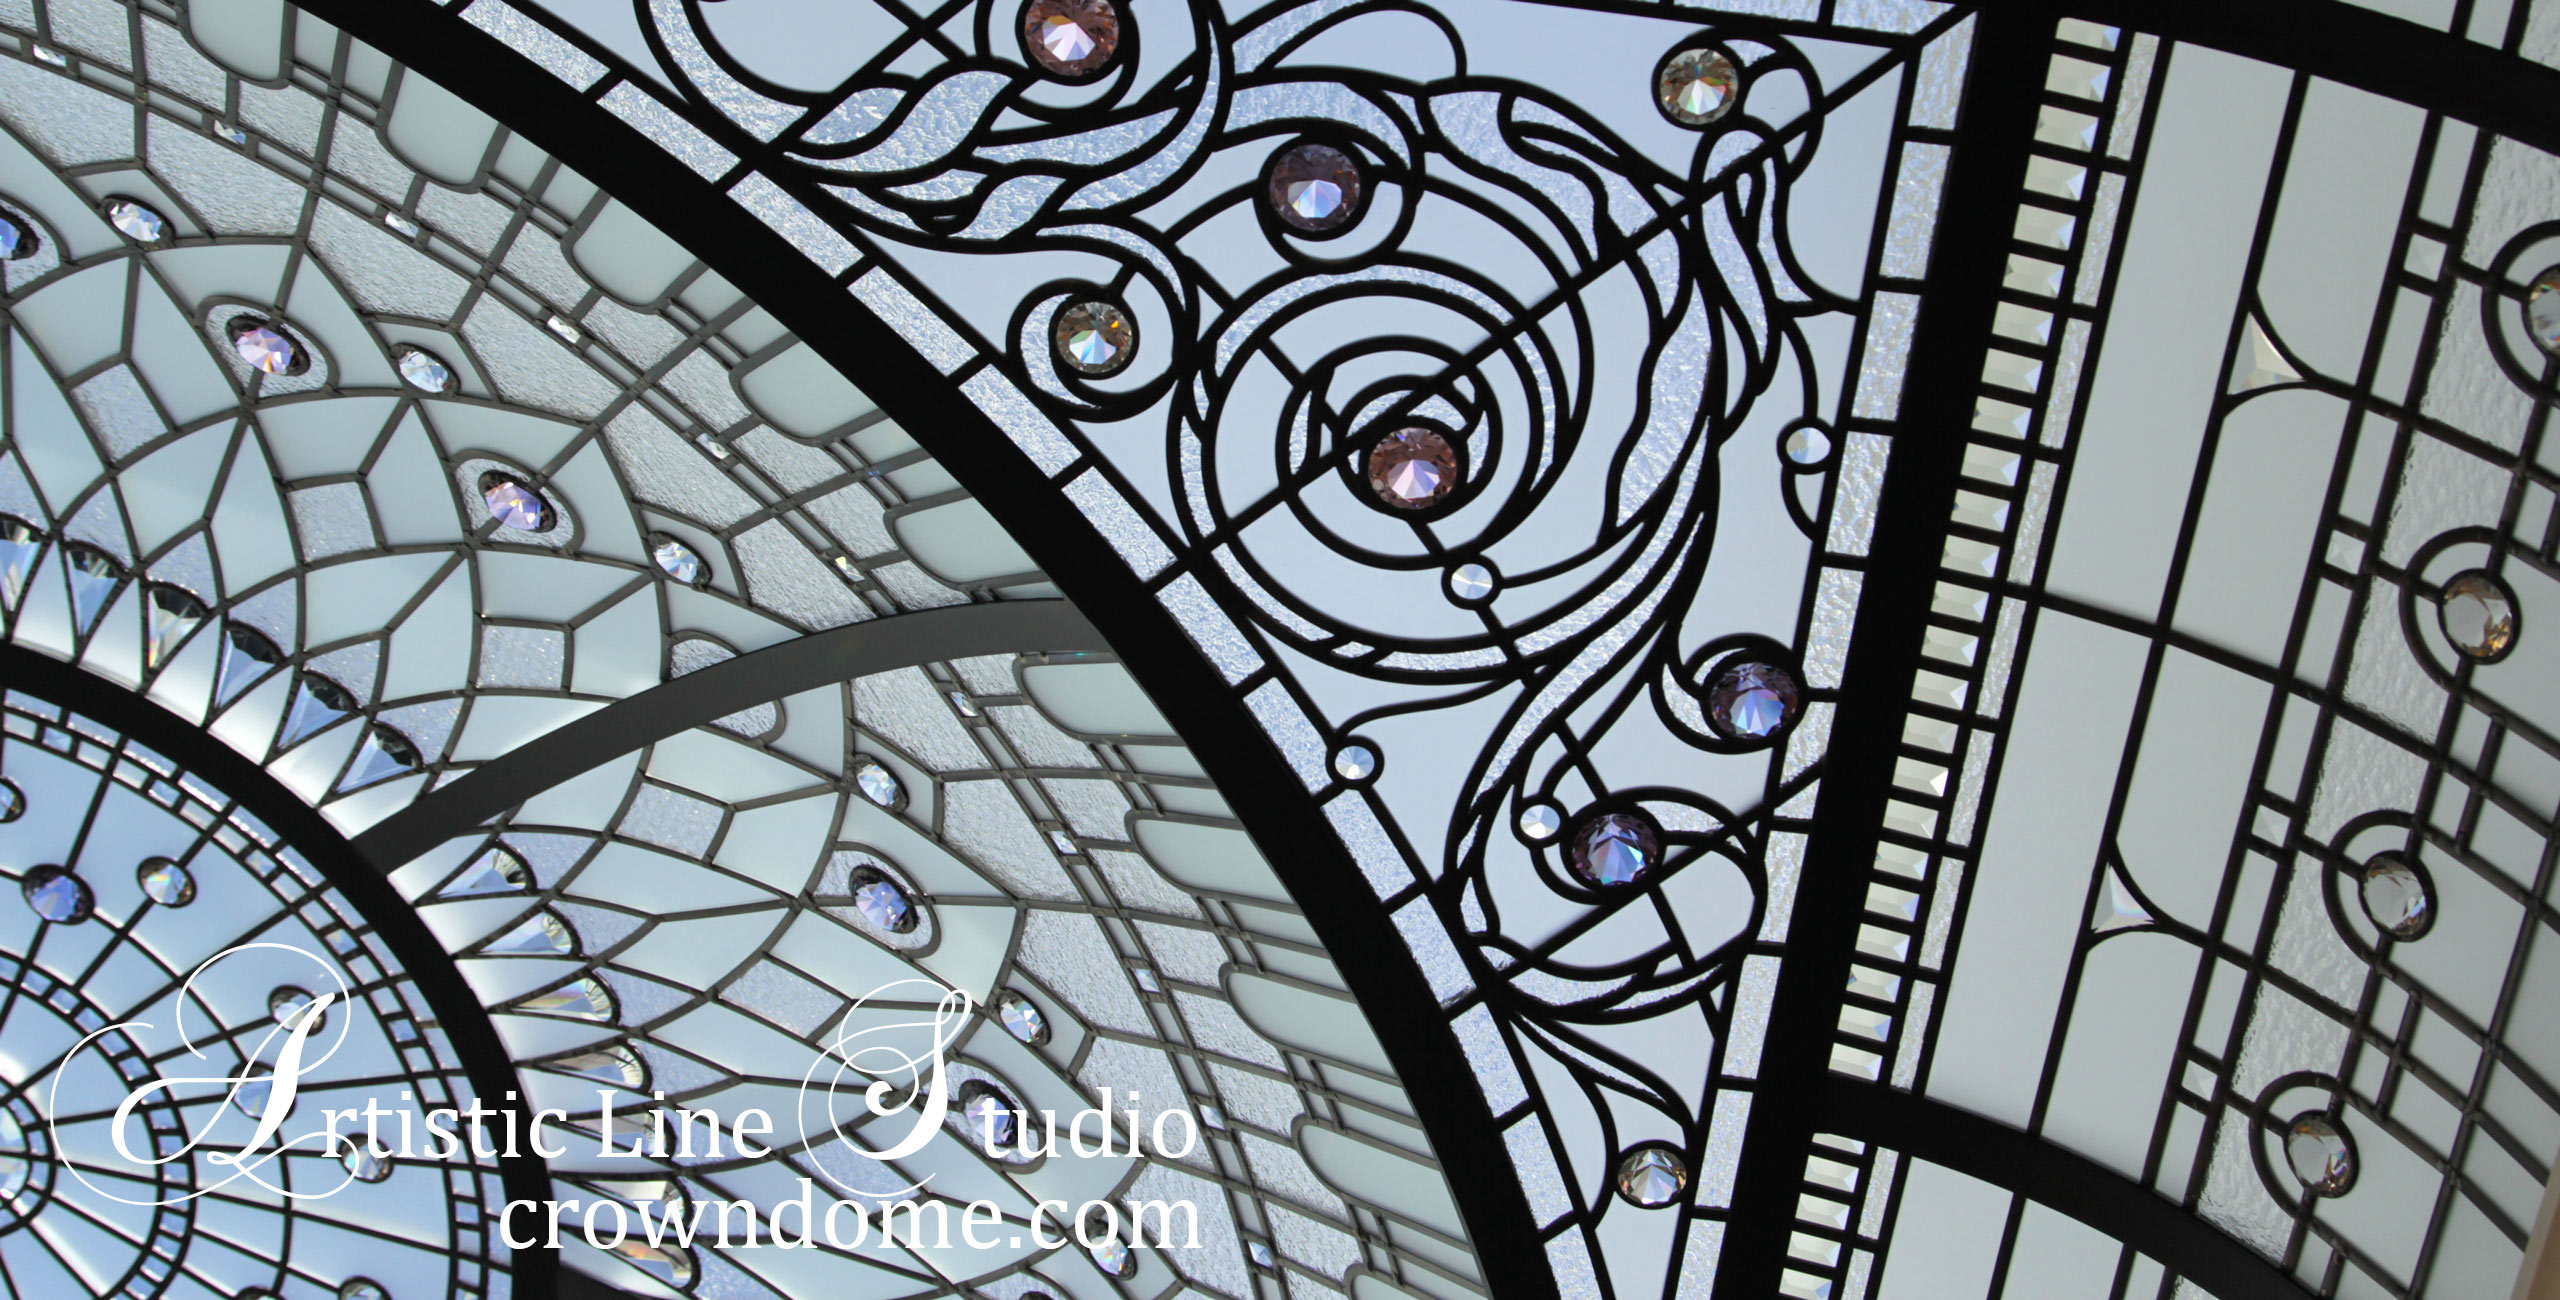 Gorgeous stained and leaded glass domed skylight ceiling for a private residence meditation room with clear textured glass, crystal drops and jewels, hand beveled custom glass. Large complex leaded glass domed ceiling. Stained glass window for the sky